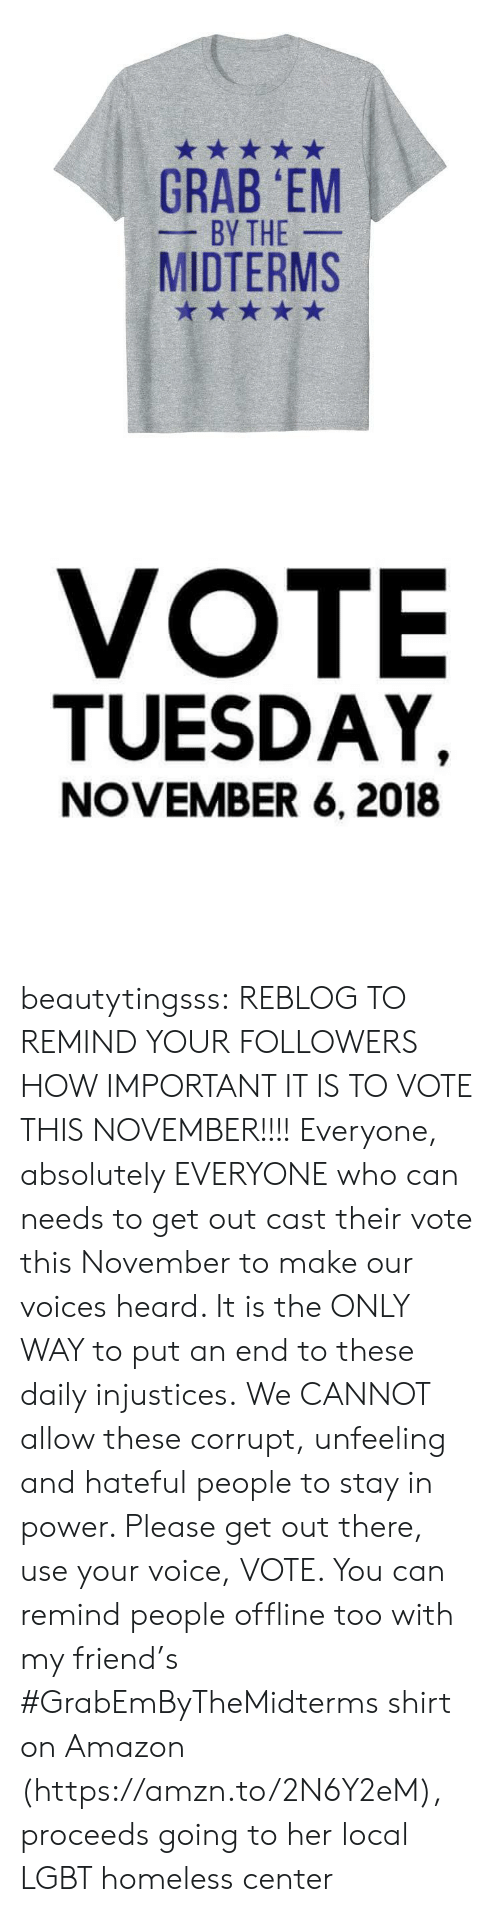 Amazon, Homeless, and Lgbt: GRAB EM  BY THE  MIDTERMS   VOTE  TUESDAY,  NOVEMBER 6, 2018 beautytingsss:  REBLOG TO REMIND YOUR FOLLOWERS HOW IMPORTANT IT IS TO VOTE THIS NOVEMBER!!!!  Everyone, absolutely EVERYONE who can needs to get out  cast their vote this November to make our voices heard.  It is the ONLY WAY to put an end to these daily injustices.  We CANNOT allow these corrupt, unfeeling and hateful people to stay in power. Please get out there, use your voice, VOTE.   You can remind people offline too with my friend's #GrabEmByTheMidterms shirt on Amazon (https://amzn.to/2N6Y2eM), proceeds going to her local LGBT homeless center